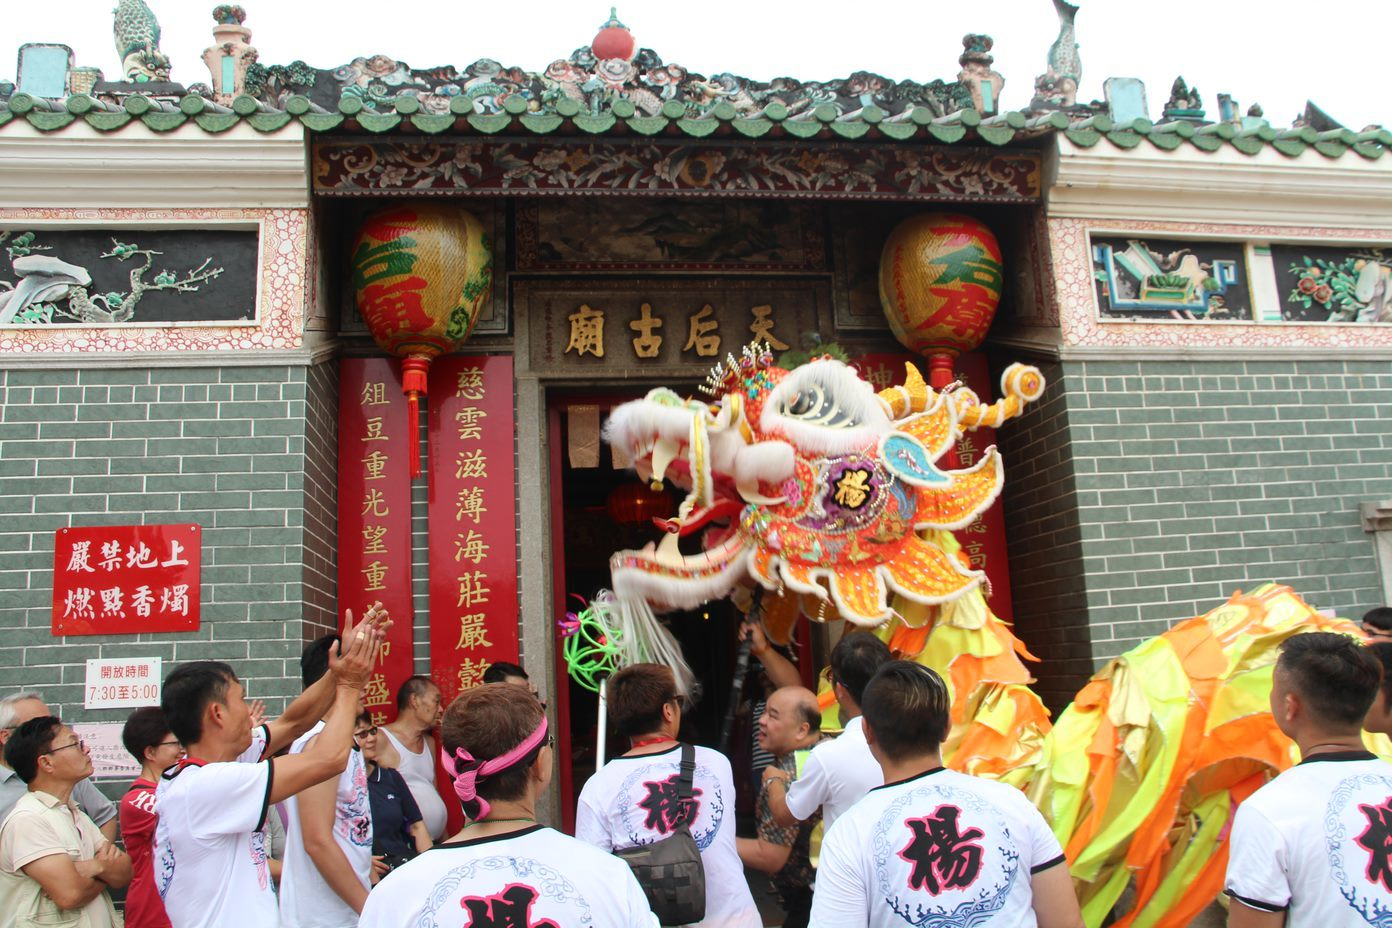 Every year, dozens of Tin Hau temples in the city celebrate the goddess of the sea's birthday with flamboyant processions of dragon, lion, and unicorn dances.